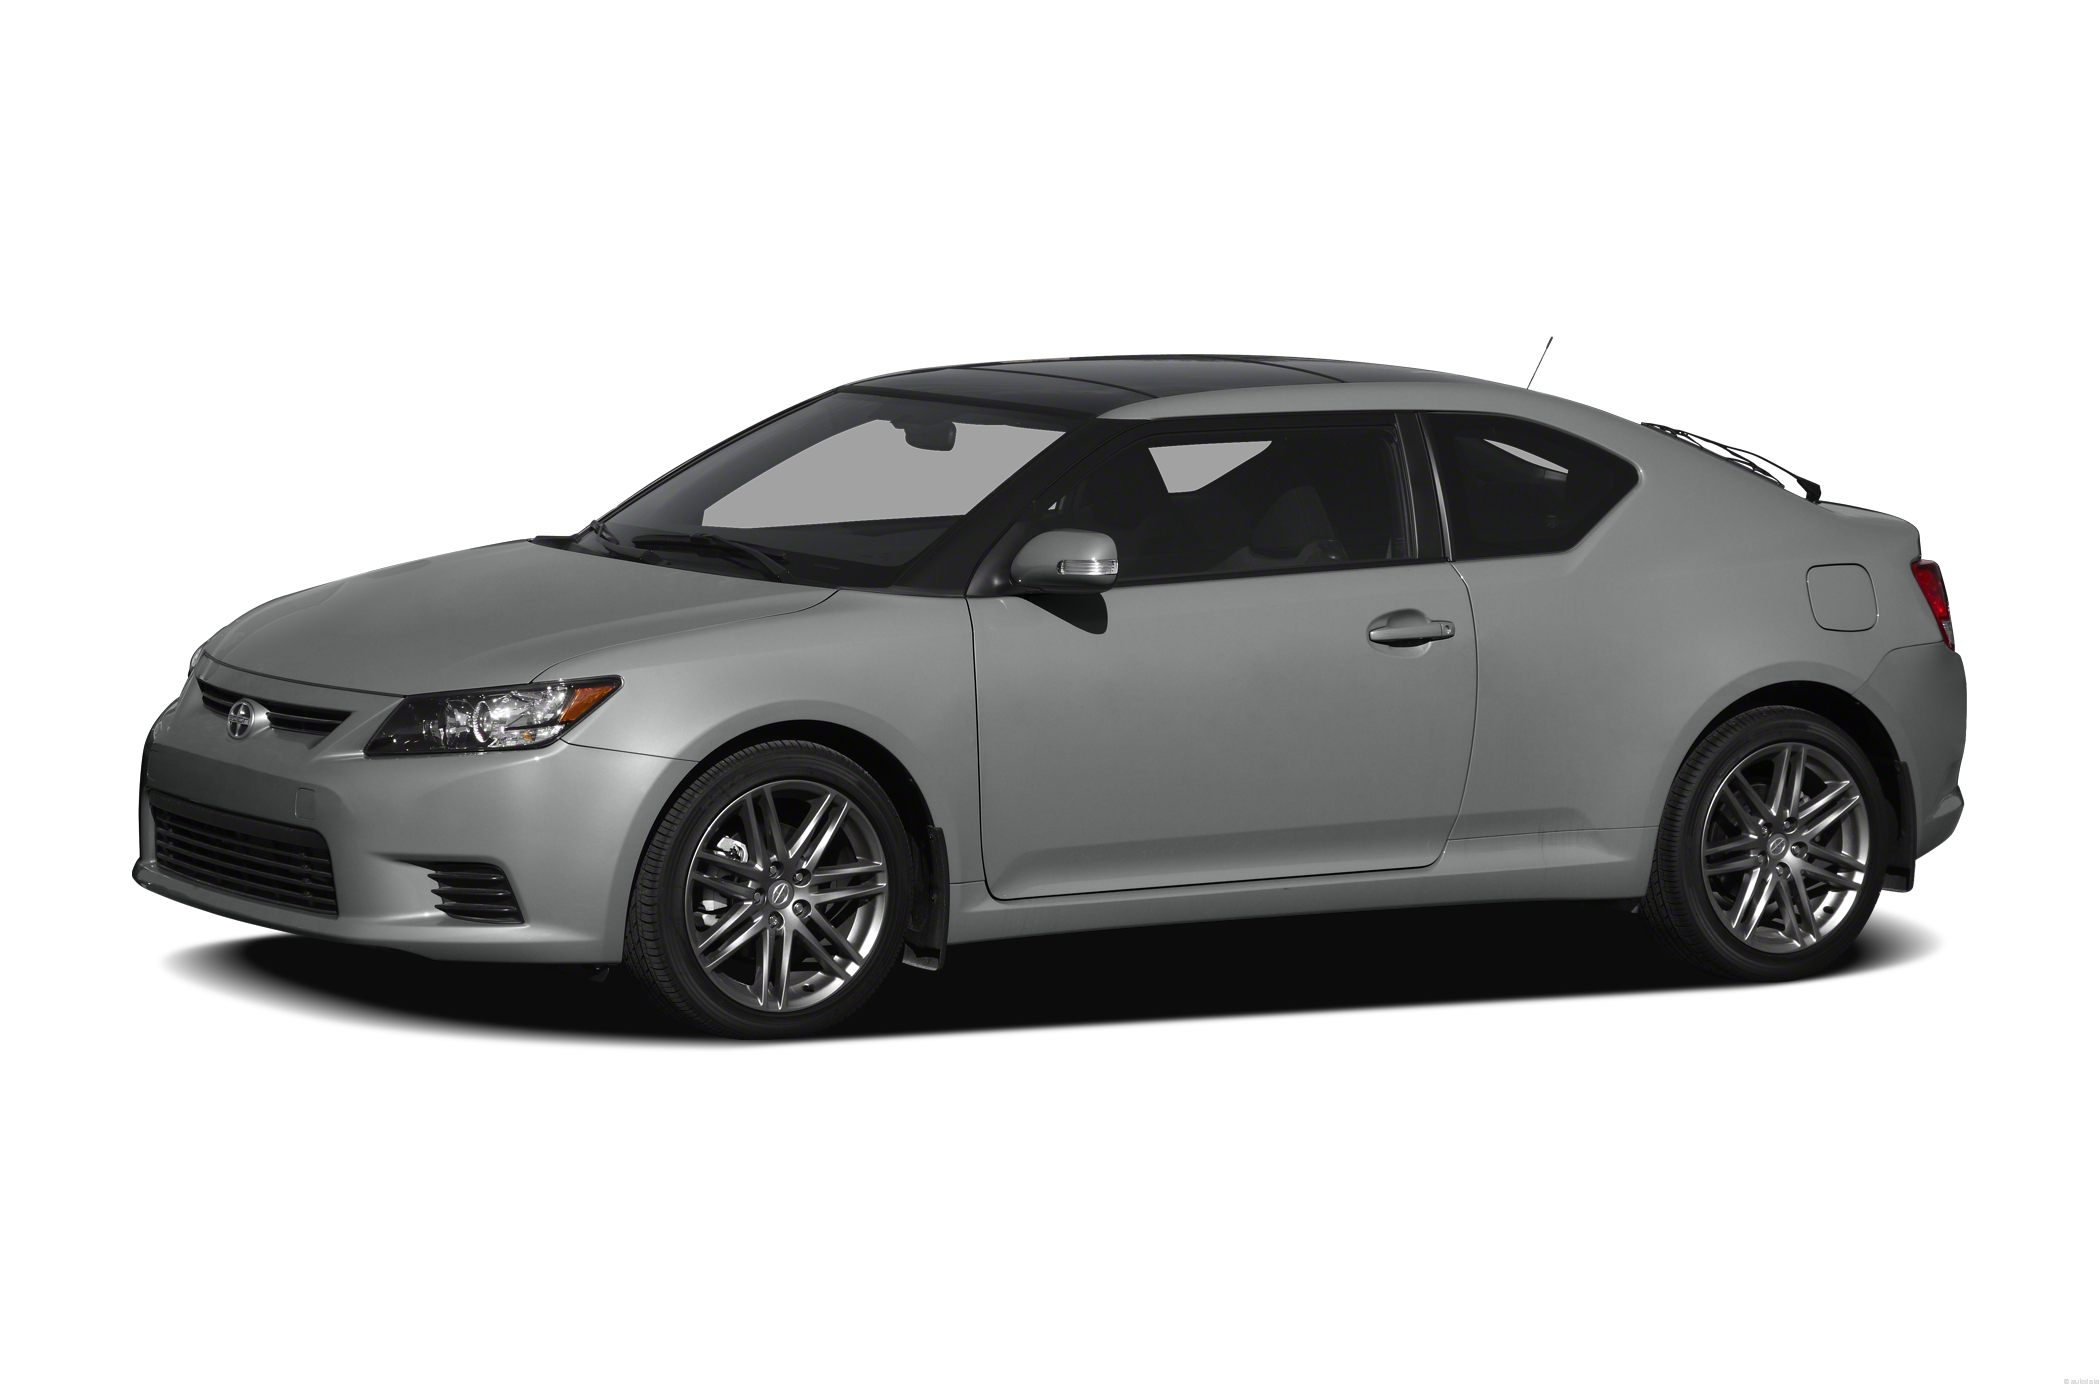 2012 Scion Tc #7